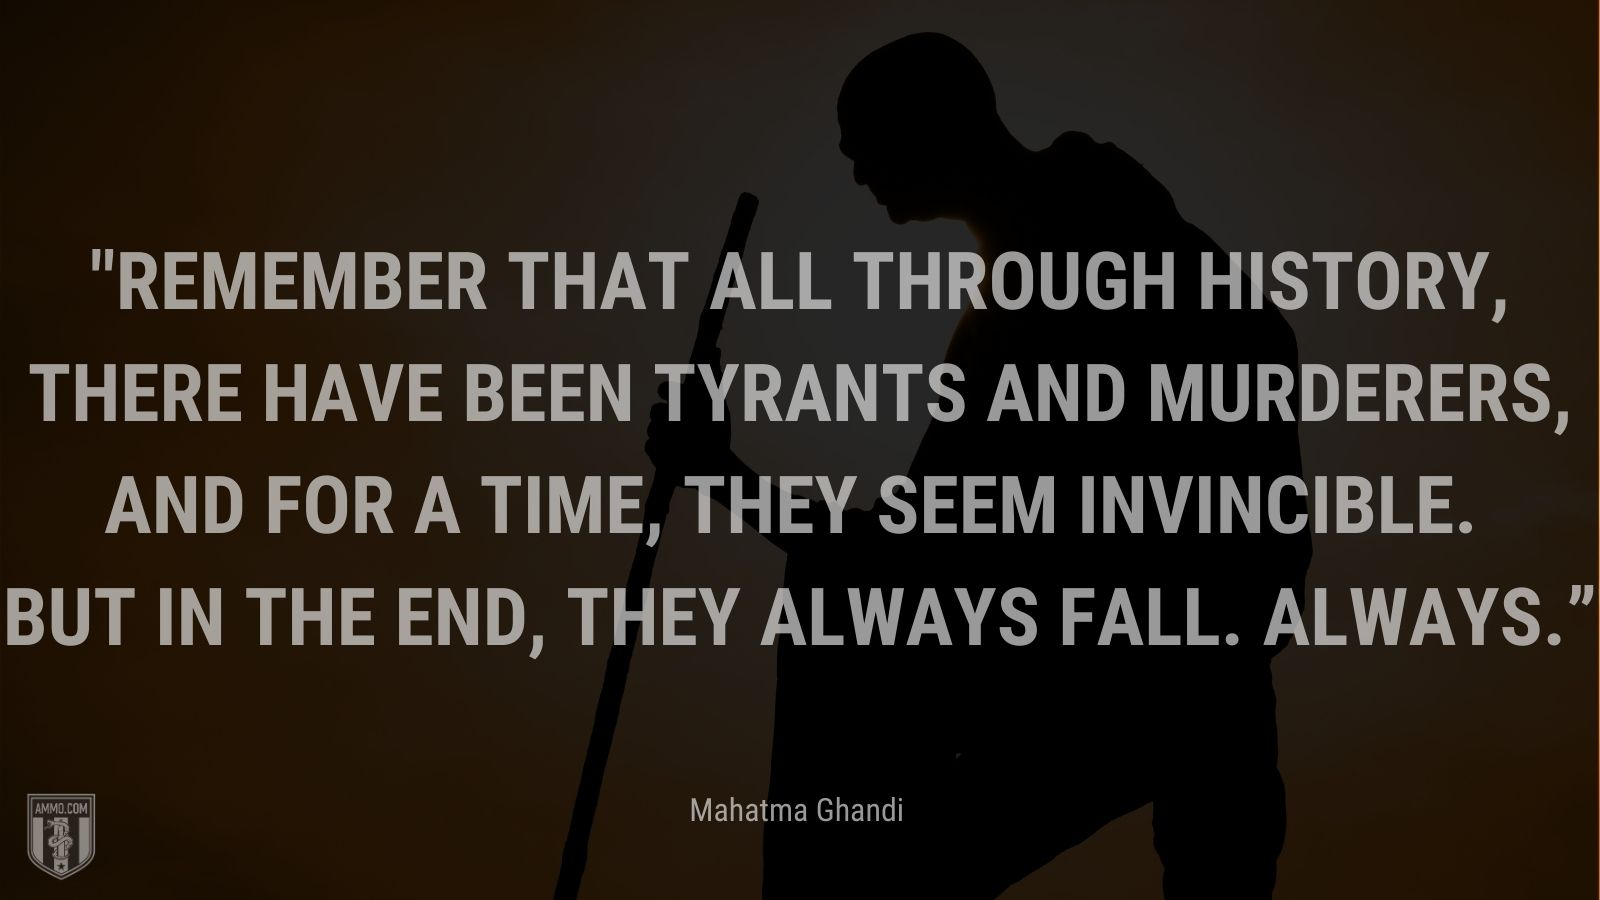 """""""Remember that all through history, there have been tyrants and murderers, and for a time, they seem invincible. But in the end, they always fall. Always."""" - Mahatma Ghandi"""